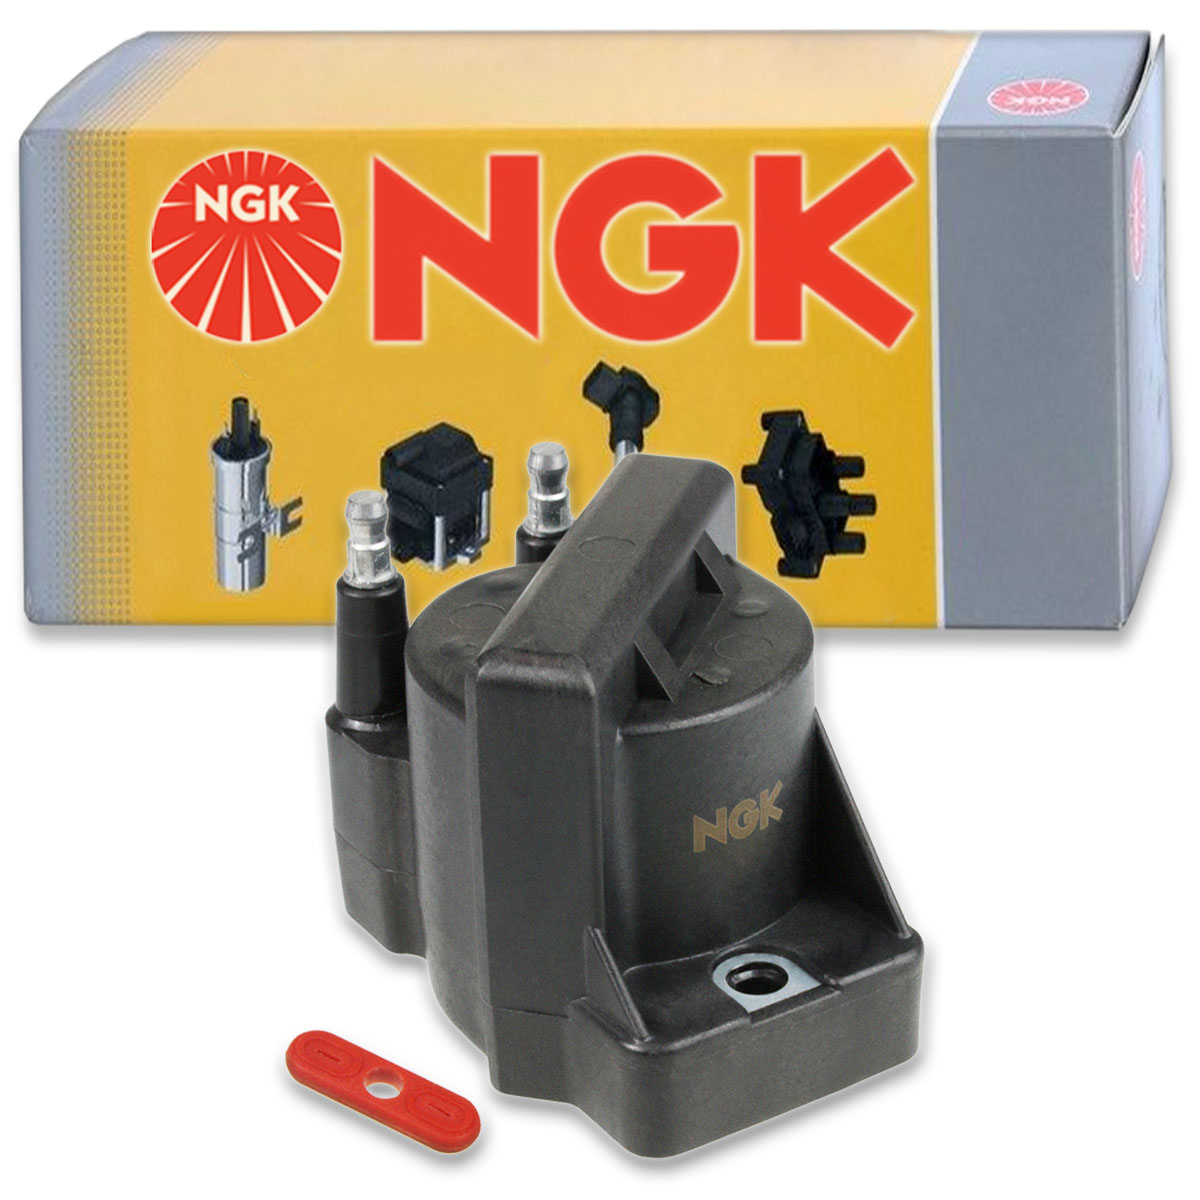 Spark Plug Tune Up dr 1 pc NGK Ignition Coil for 2004-2008 Acura TSX 2.4L L4